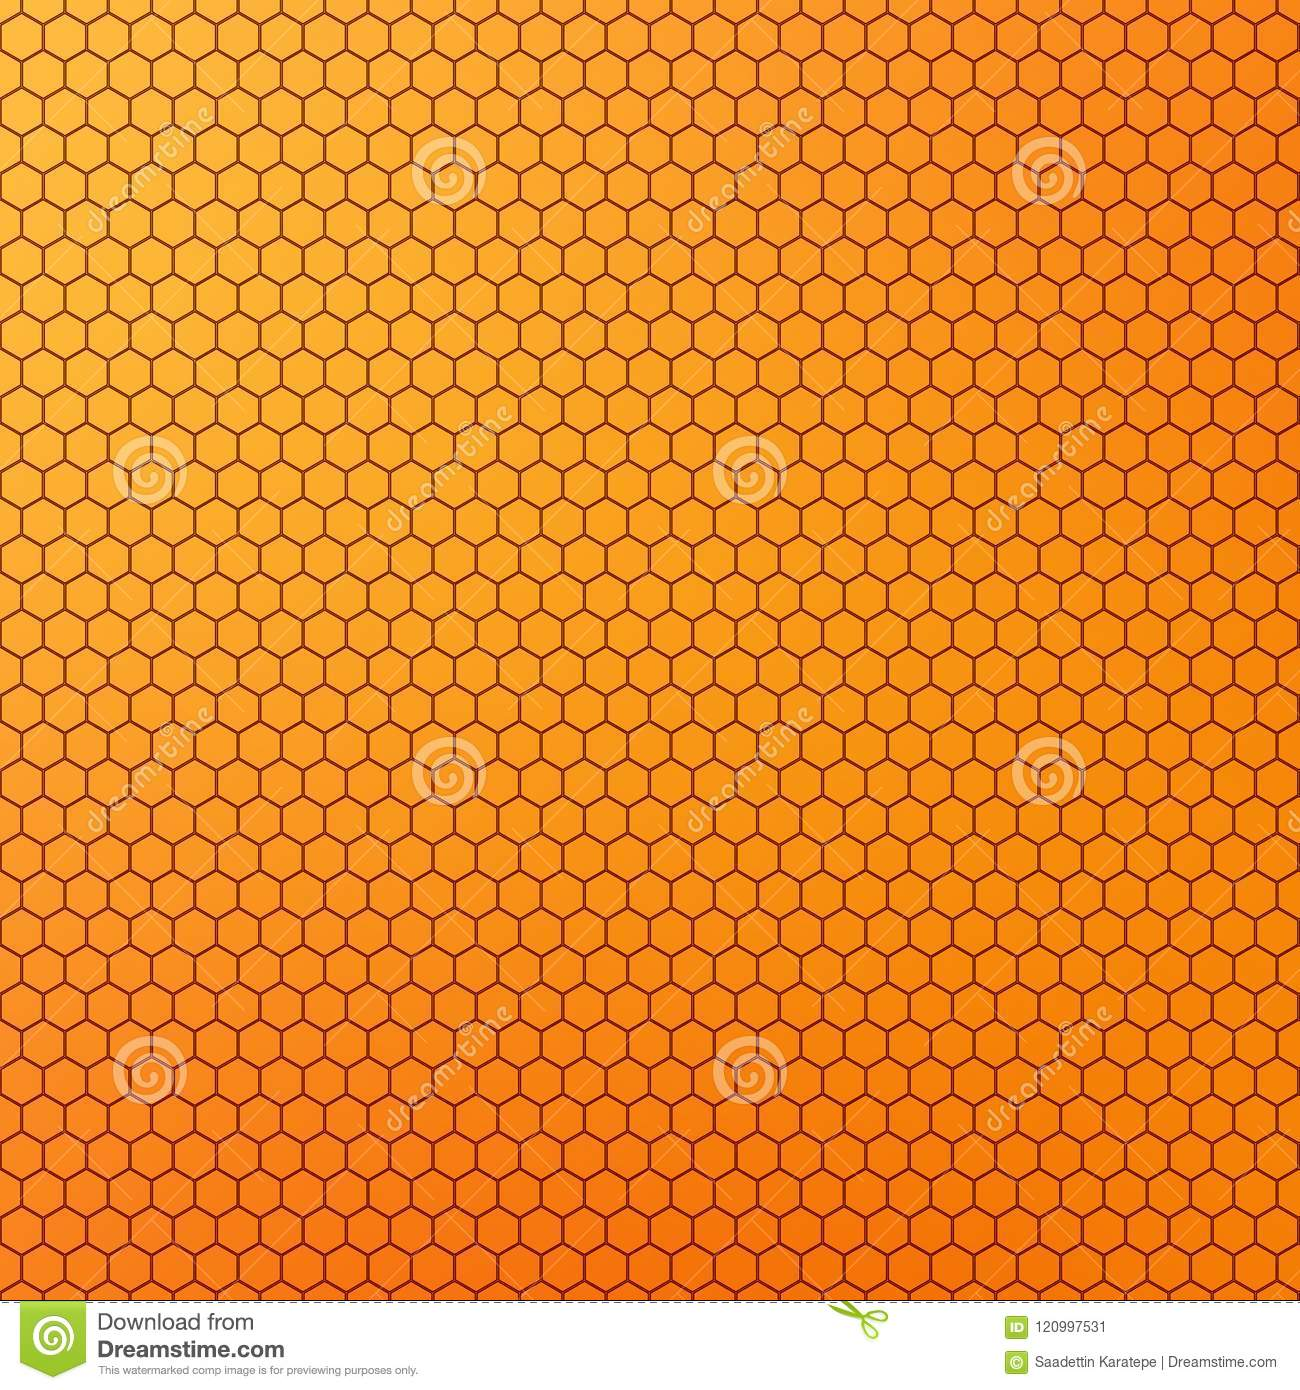 Yellow Orange Colored Honeycomb Design Abstract Background